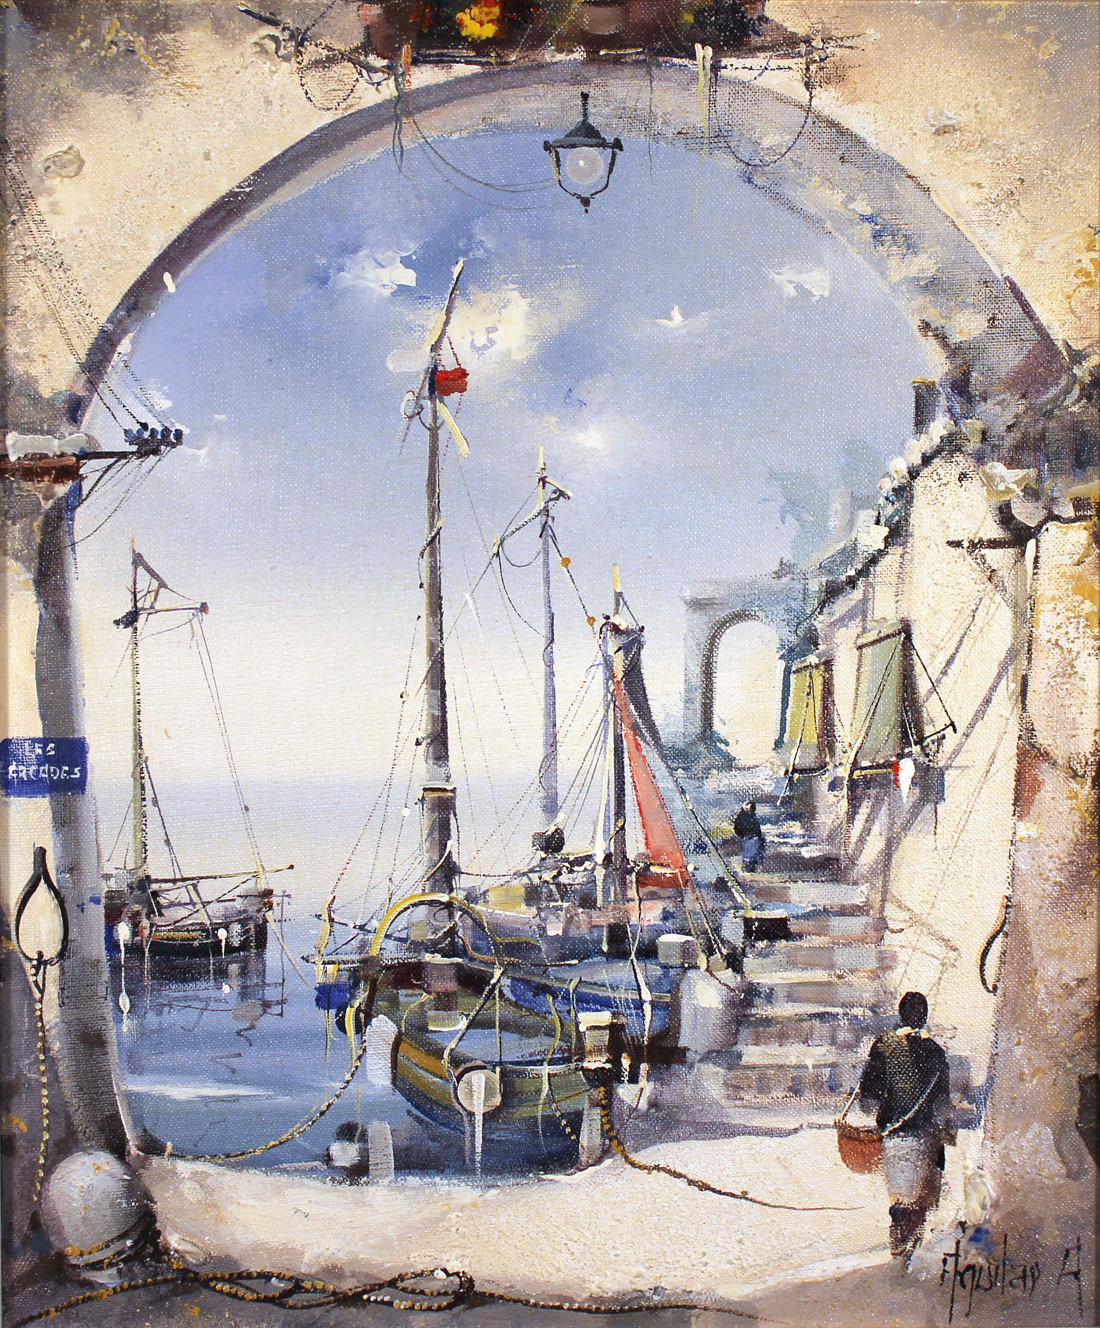 Jorge Aguilar Agon, Original oil painting on canvas, Through the Arch. Click to enlarge